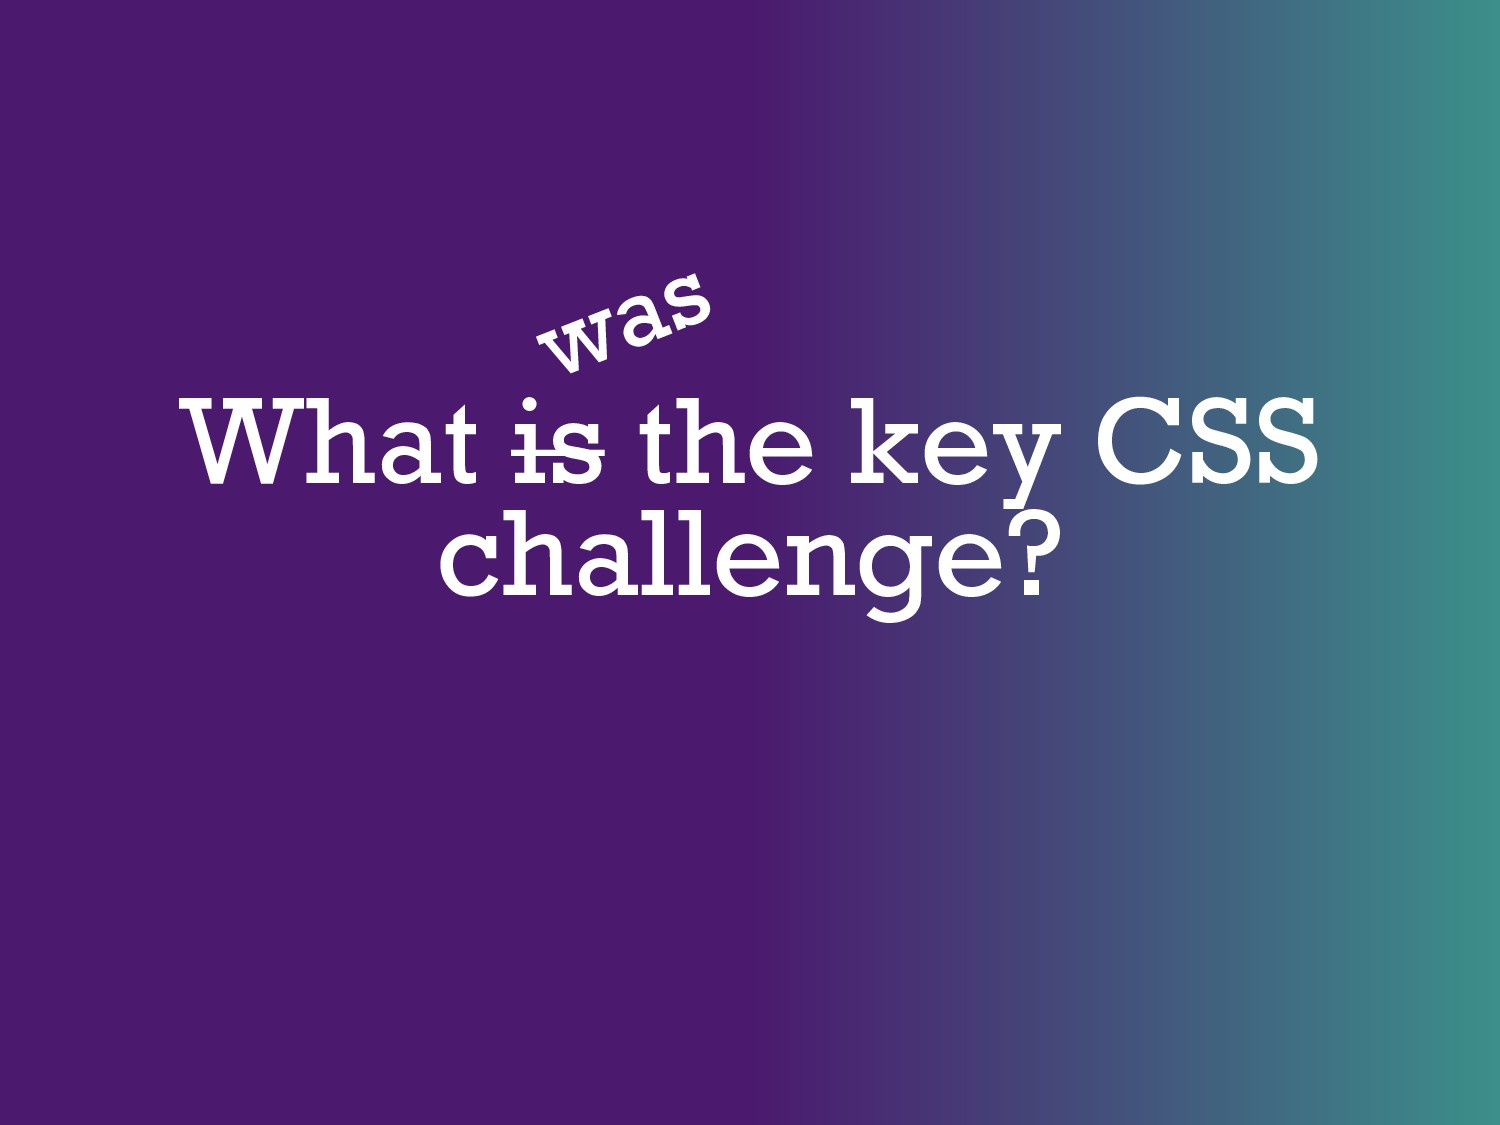 What is the key CSS challenge? was